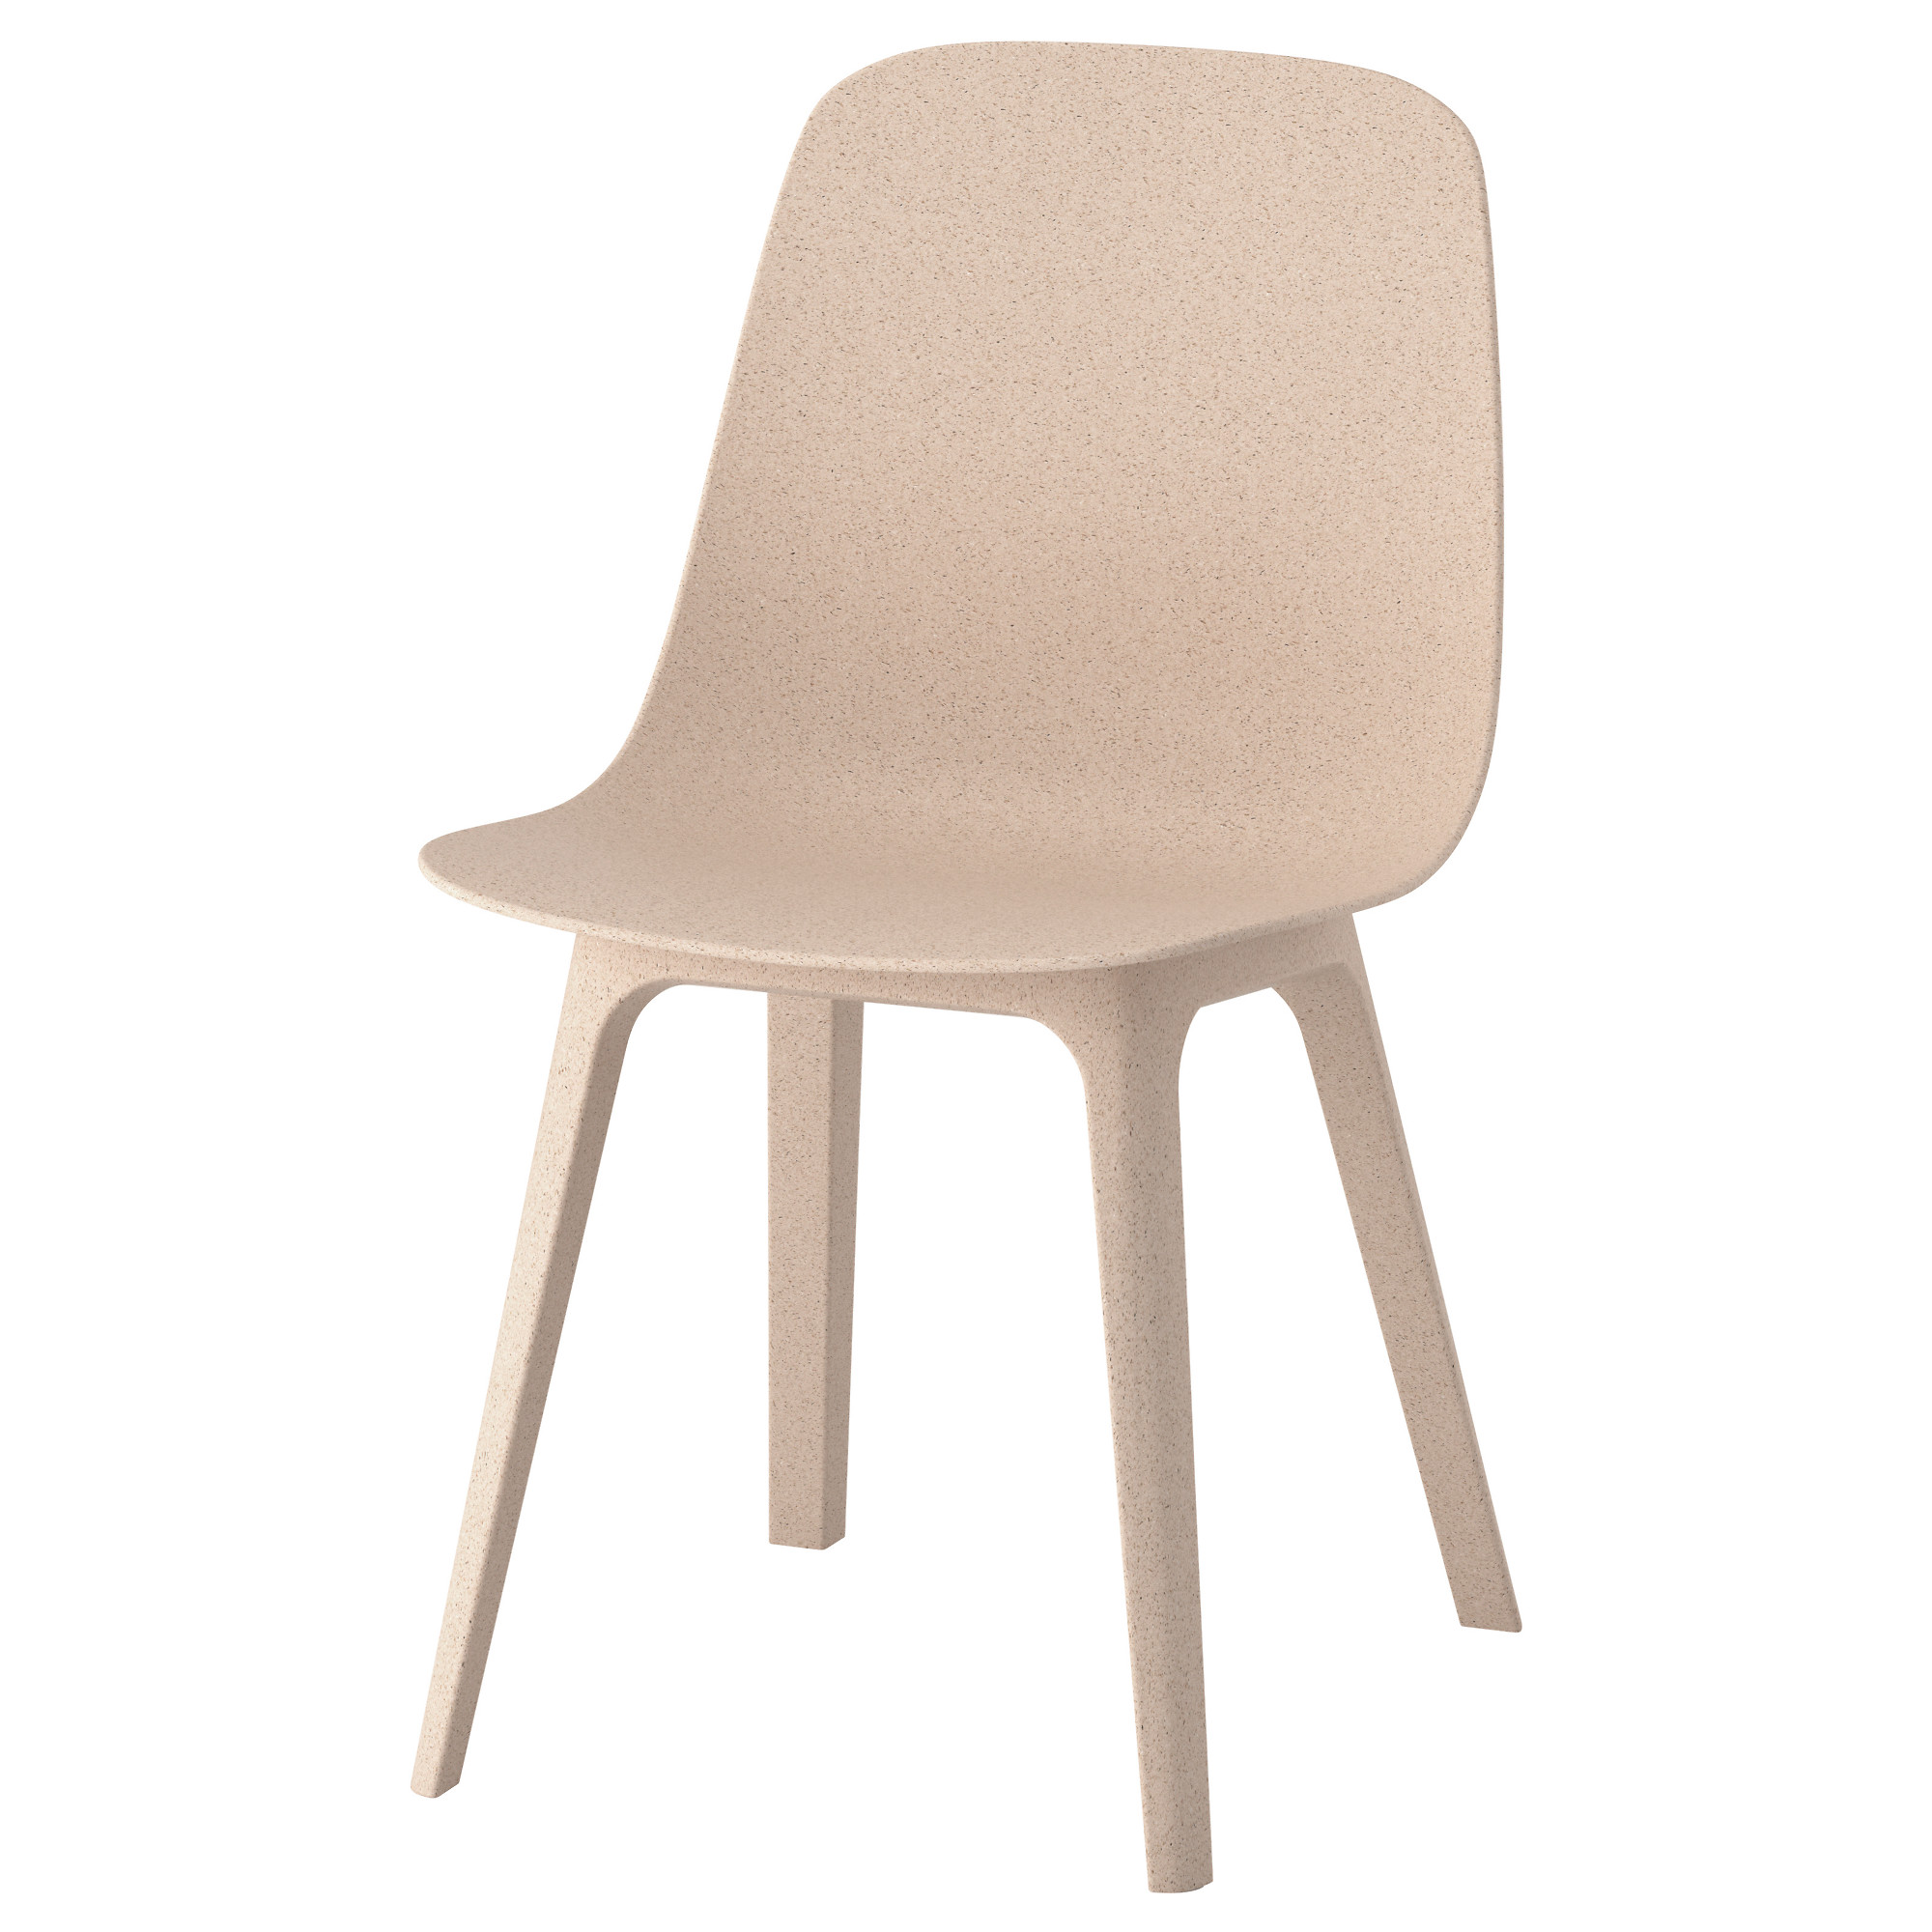 Odger Chair - Beige white (comes in multiple colors), $75.00